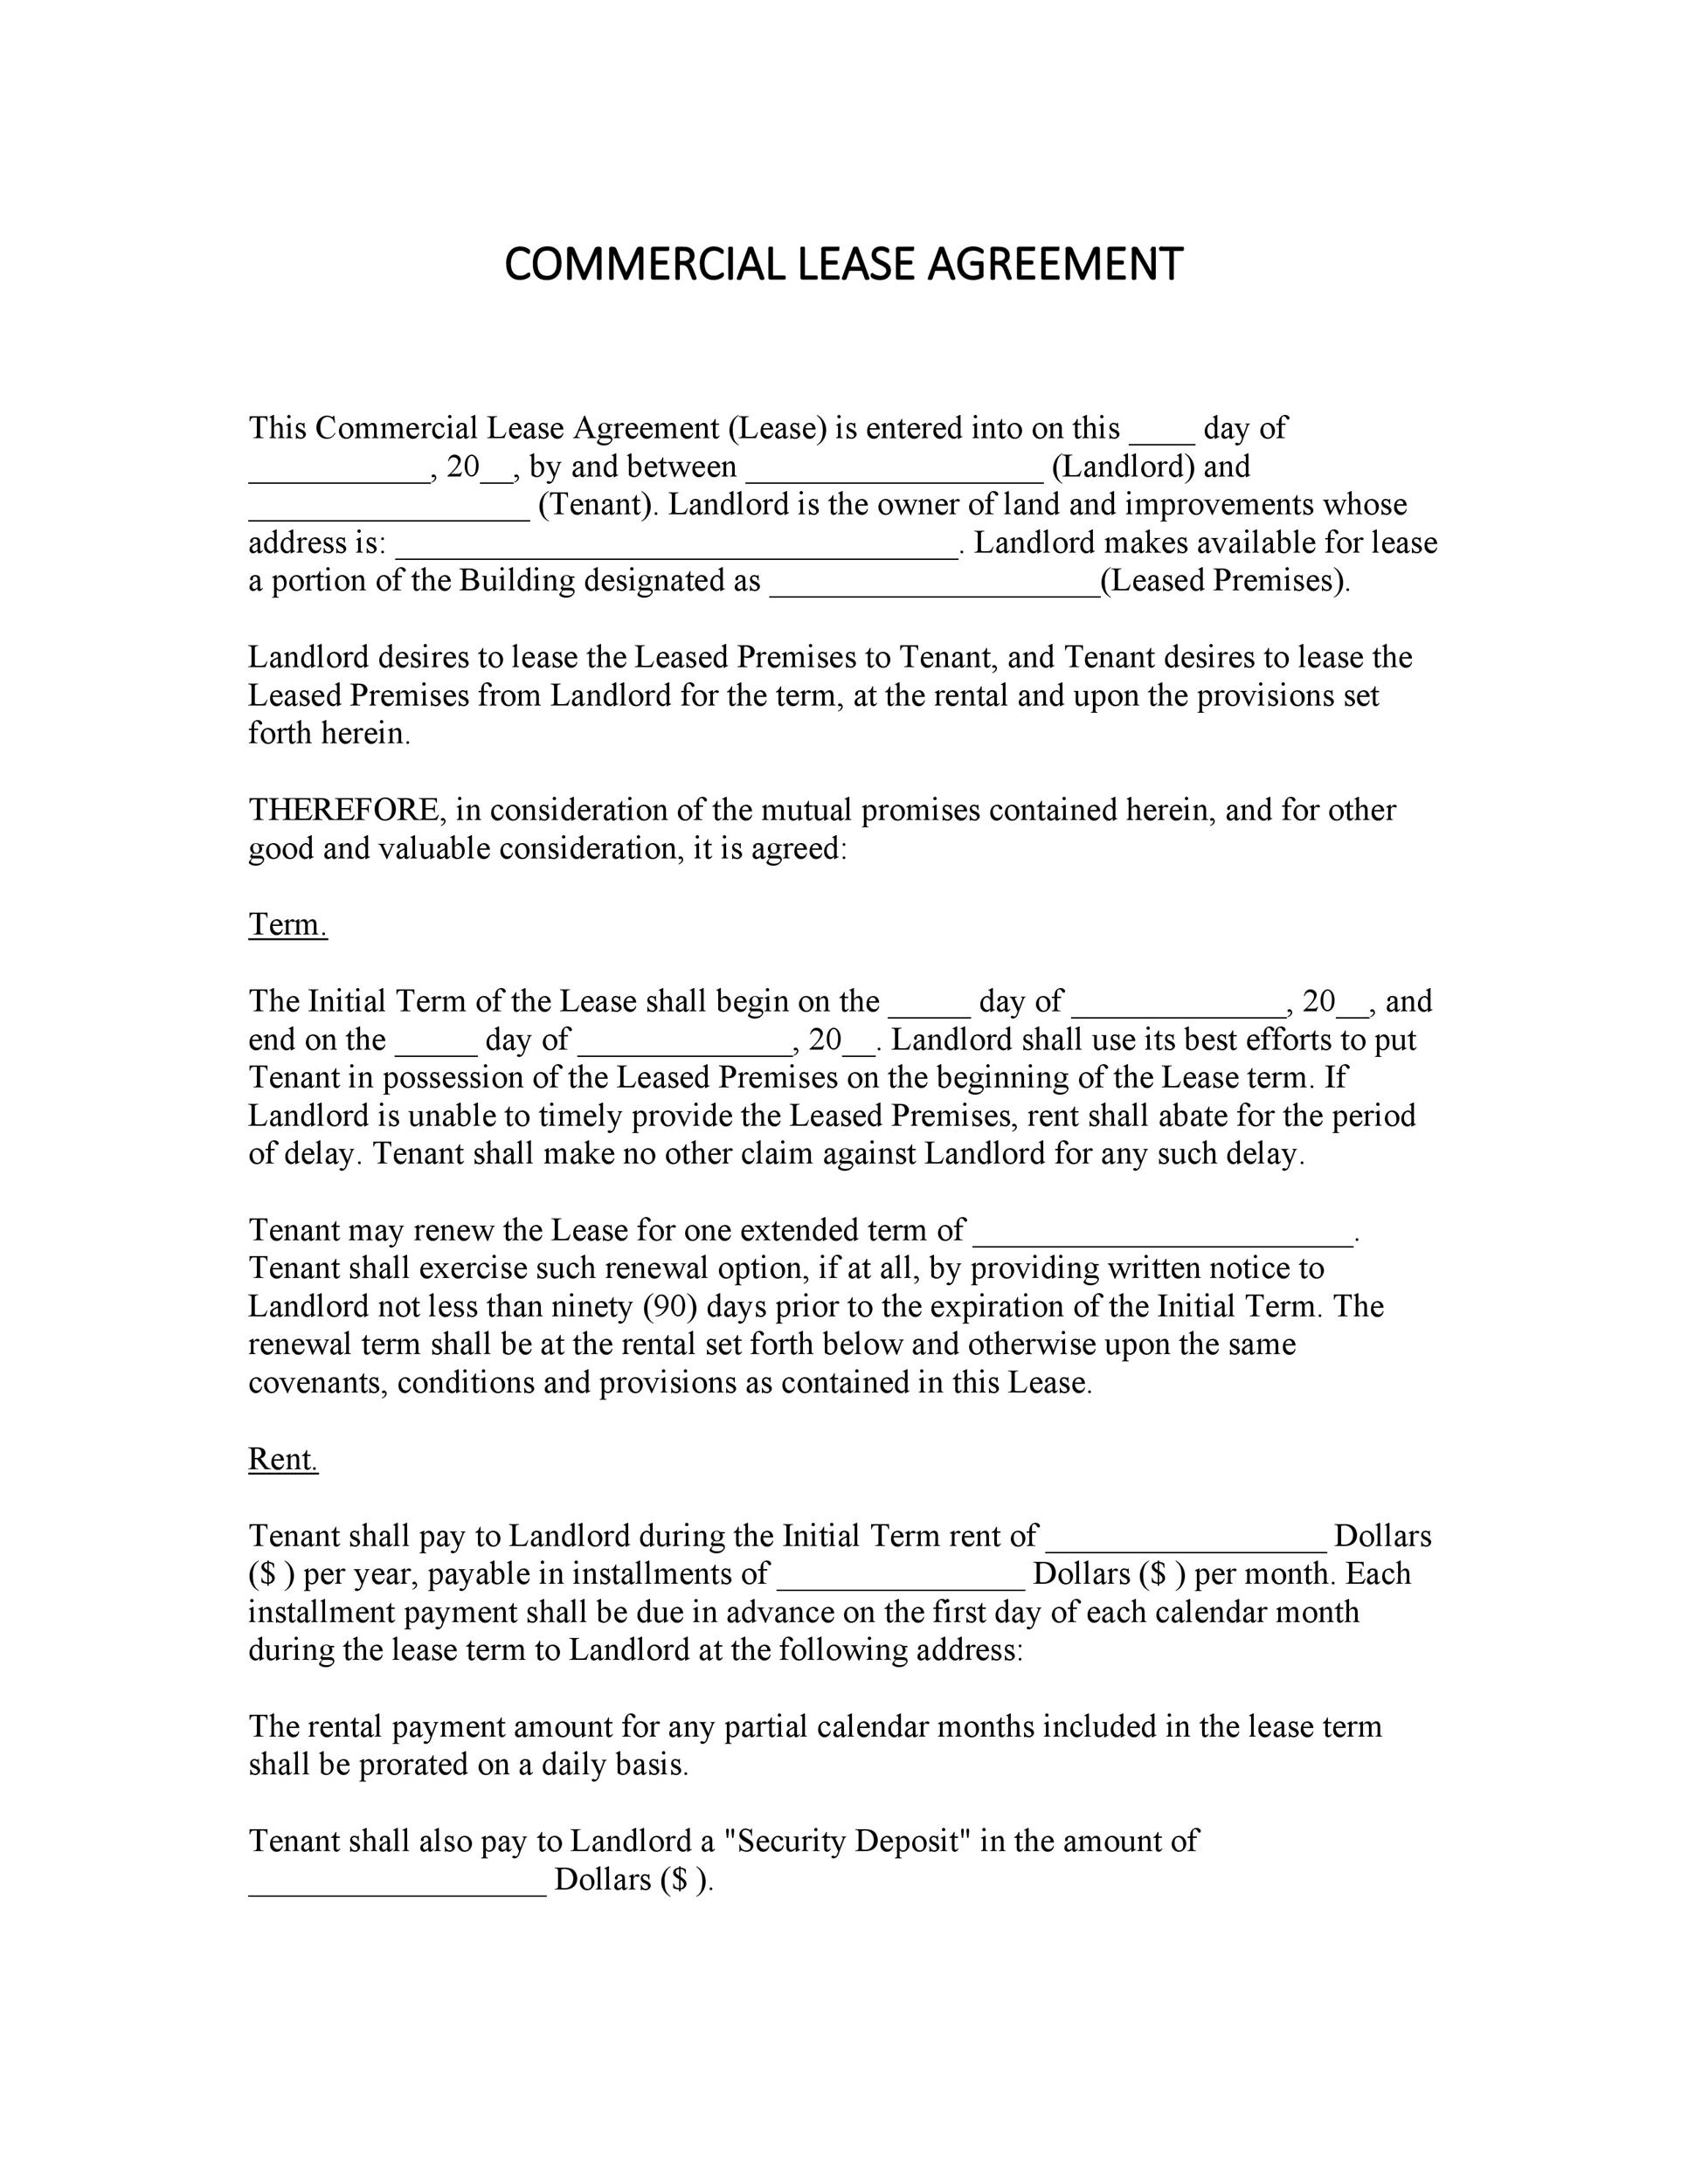 Lease Extension Agreement 7 Best Rental Agreement Papers Images – Sample Commercial Lease Agreement